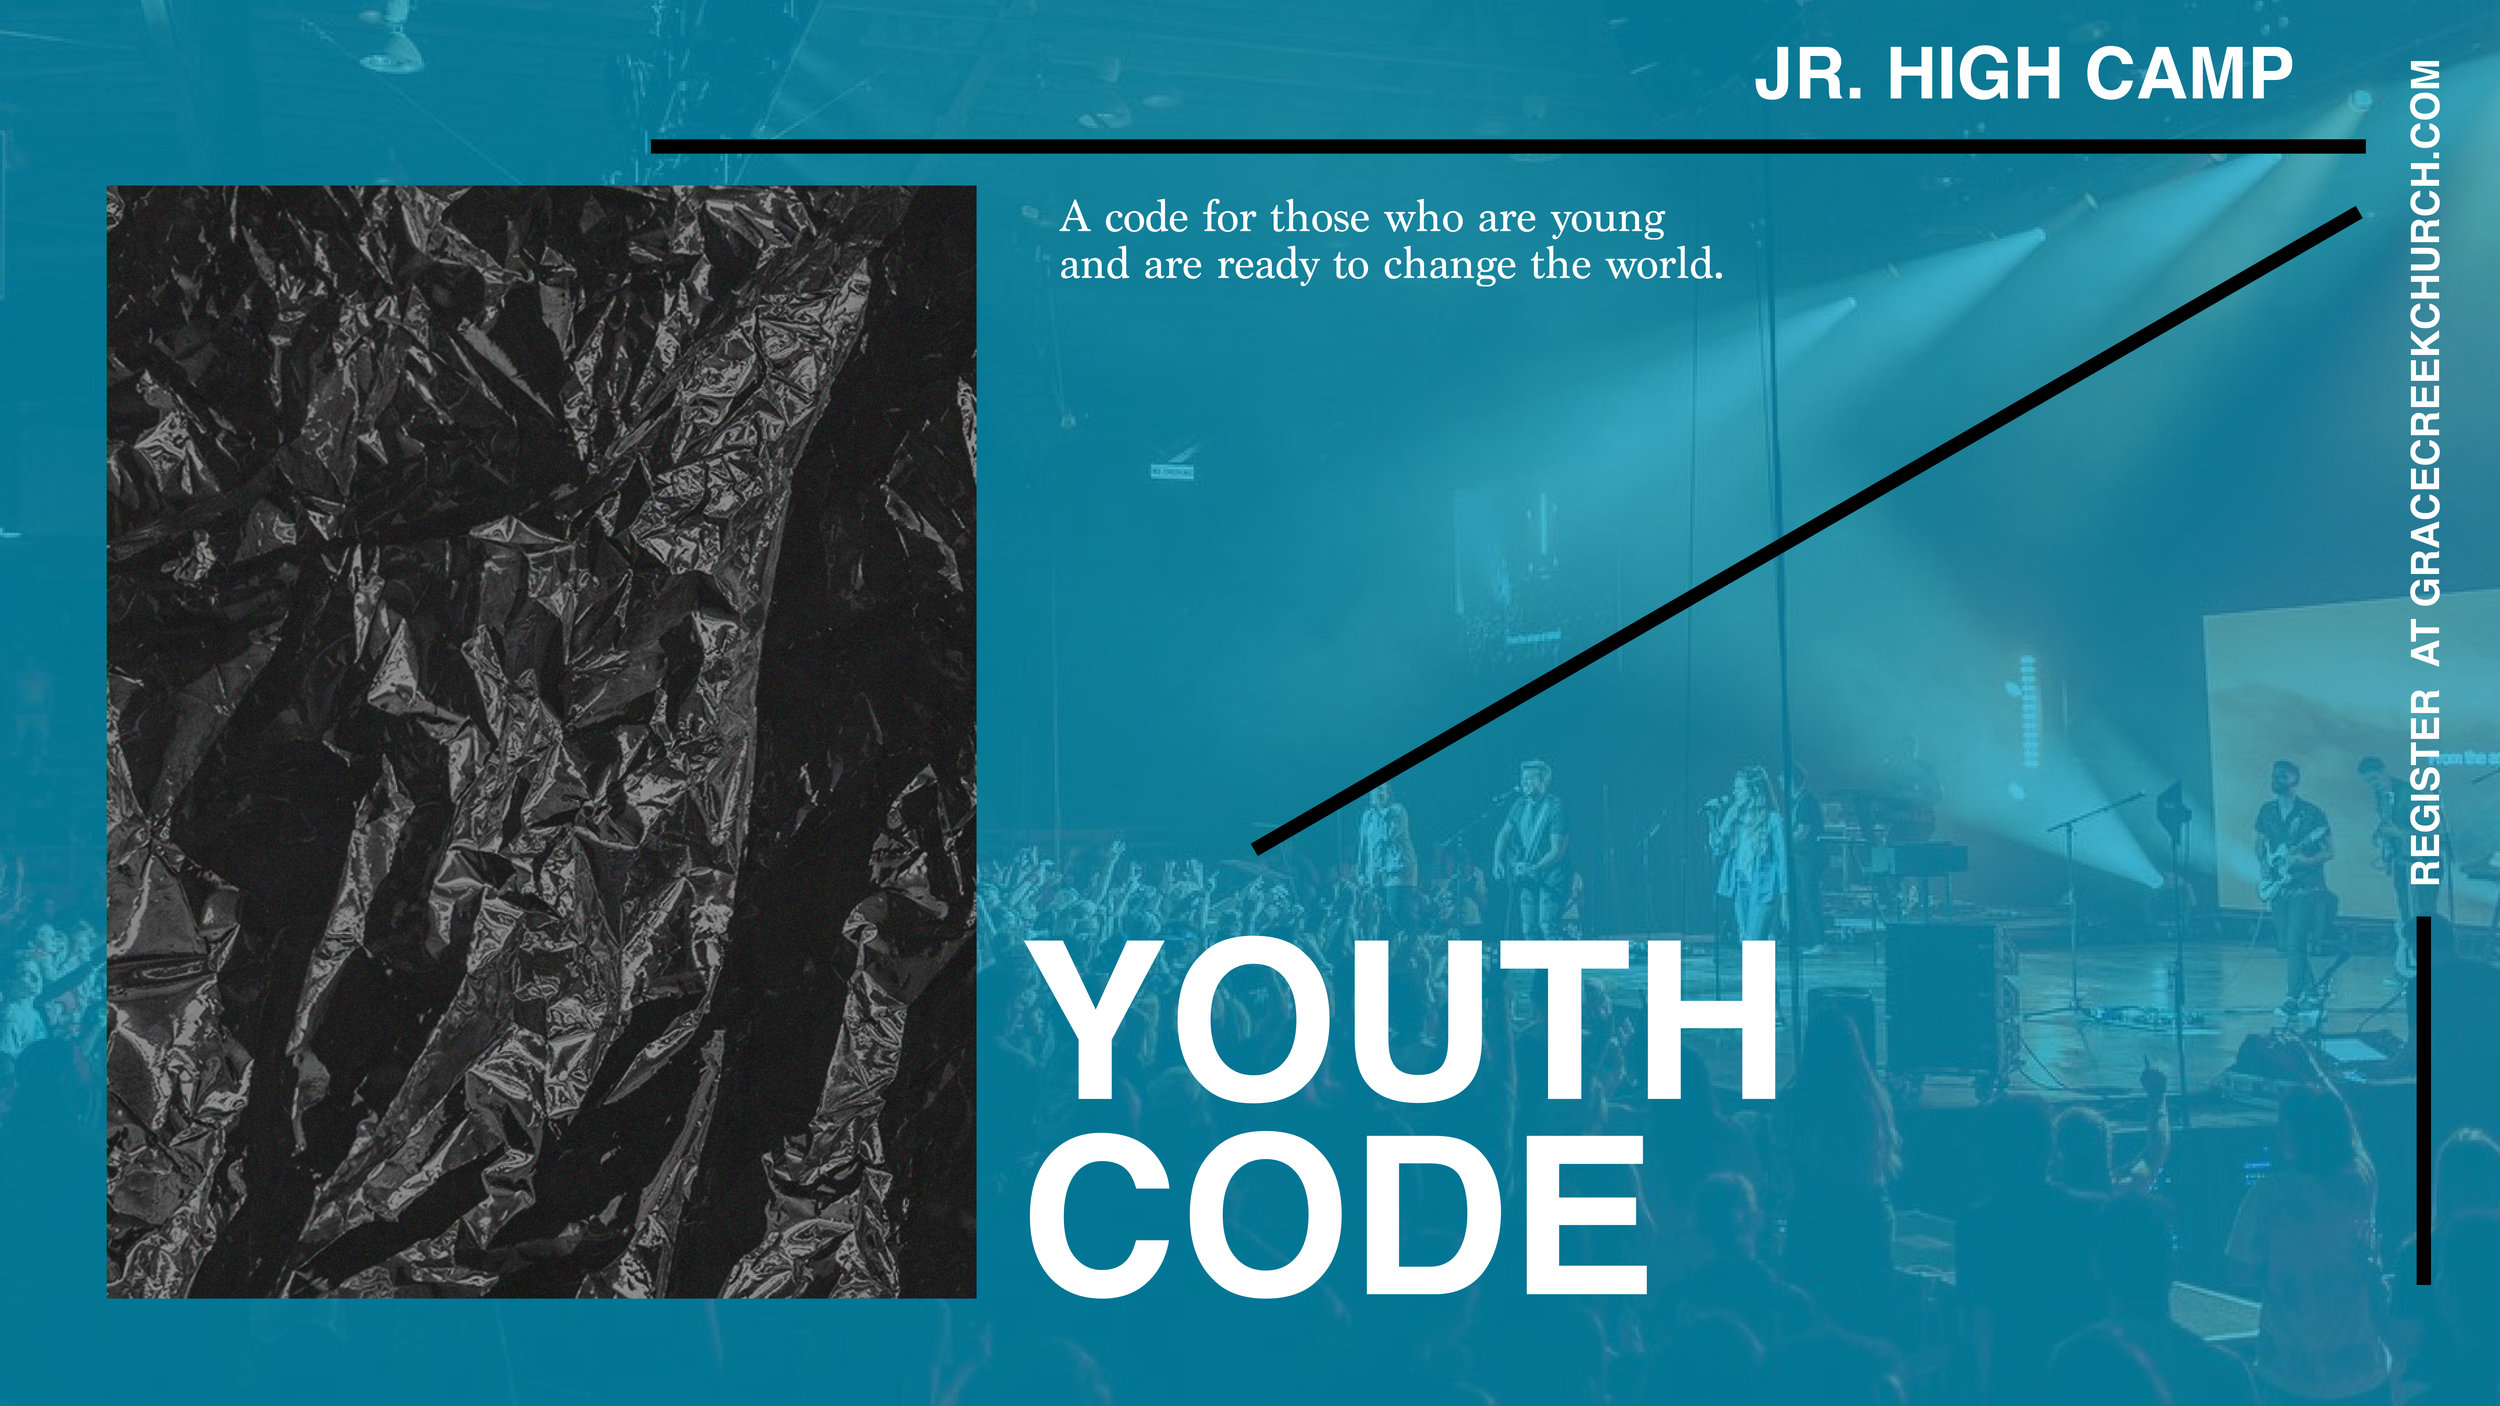 Youth Code Slide - JR. HIGH.jpg